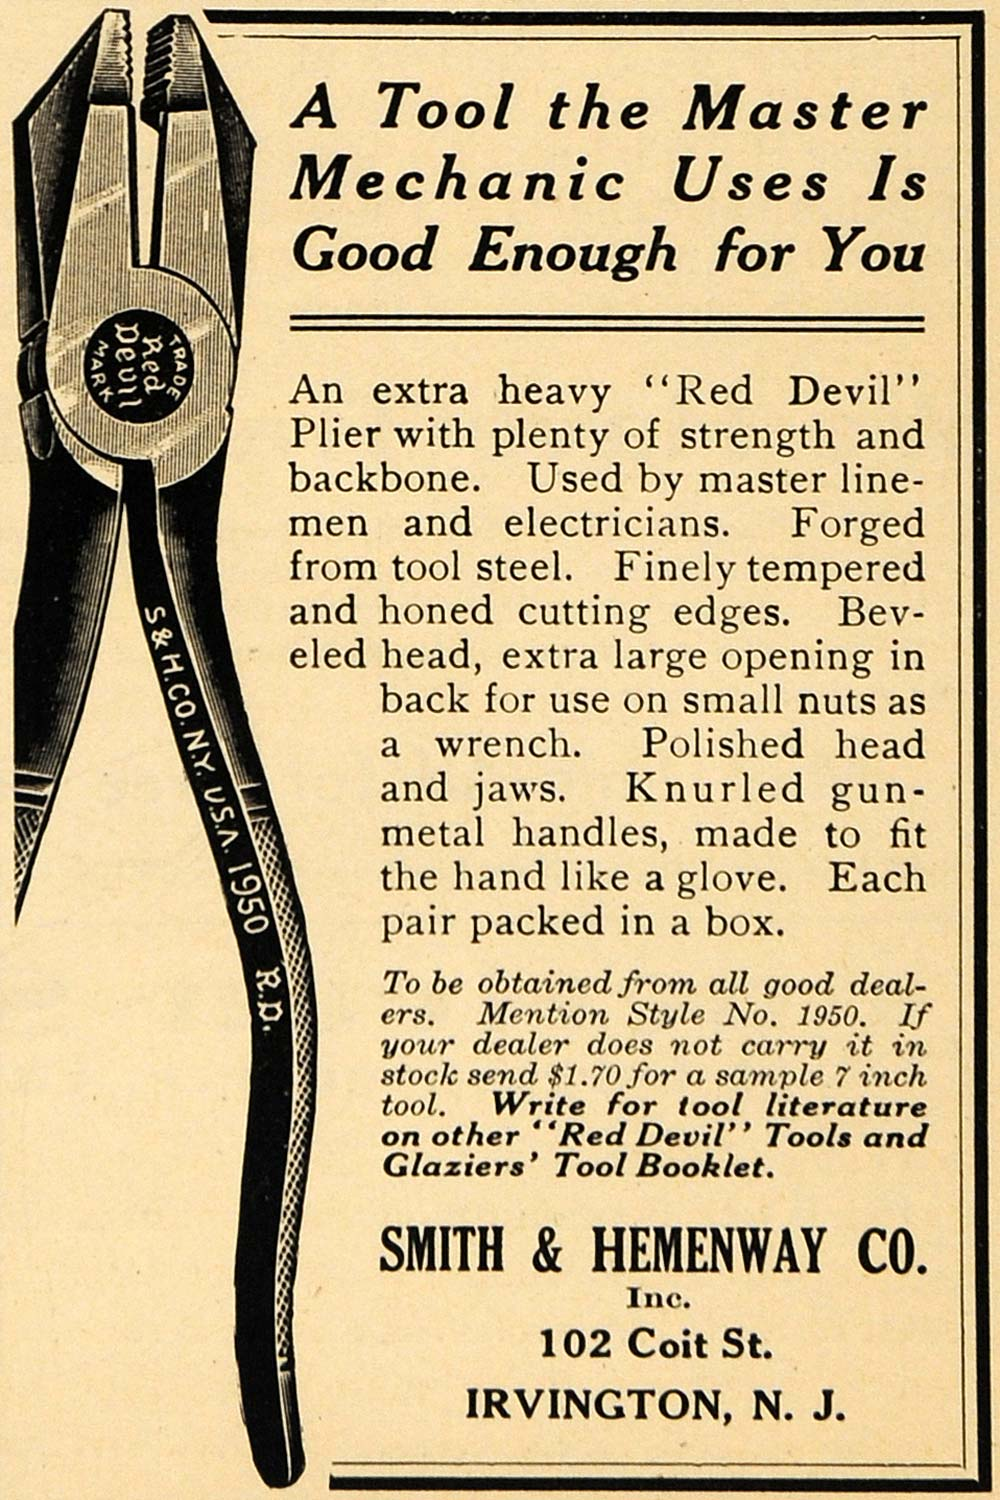 1917 Ad Smith & Hemenway Co. Red Devil Plier Tools - ORIGINAL ADVERTISING ILW1